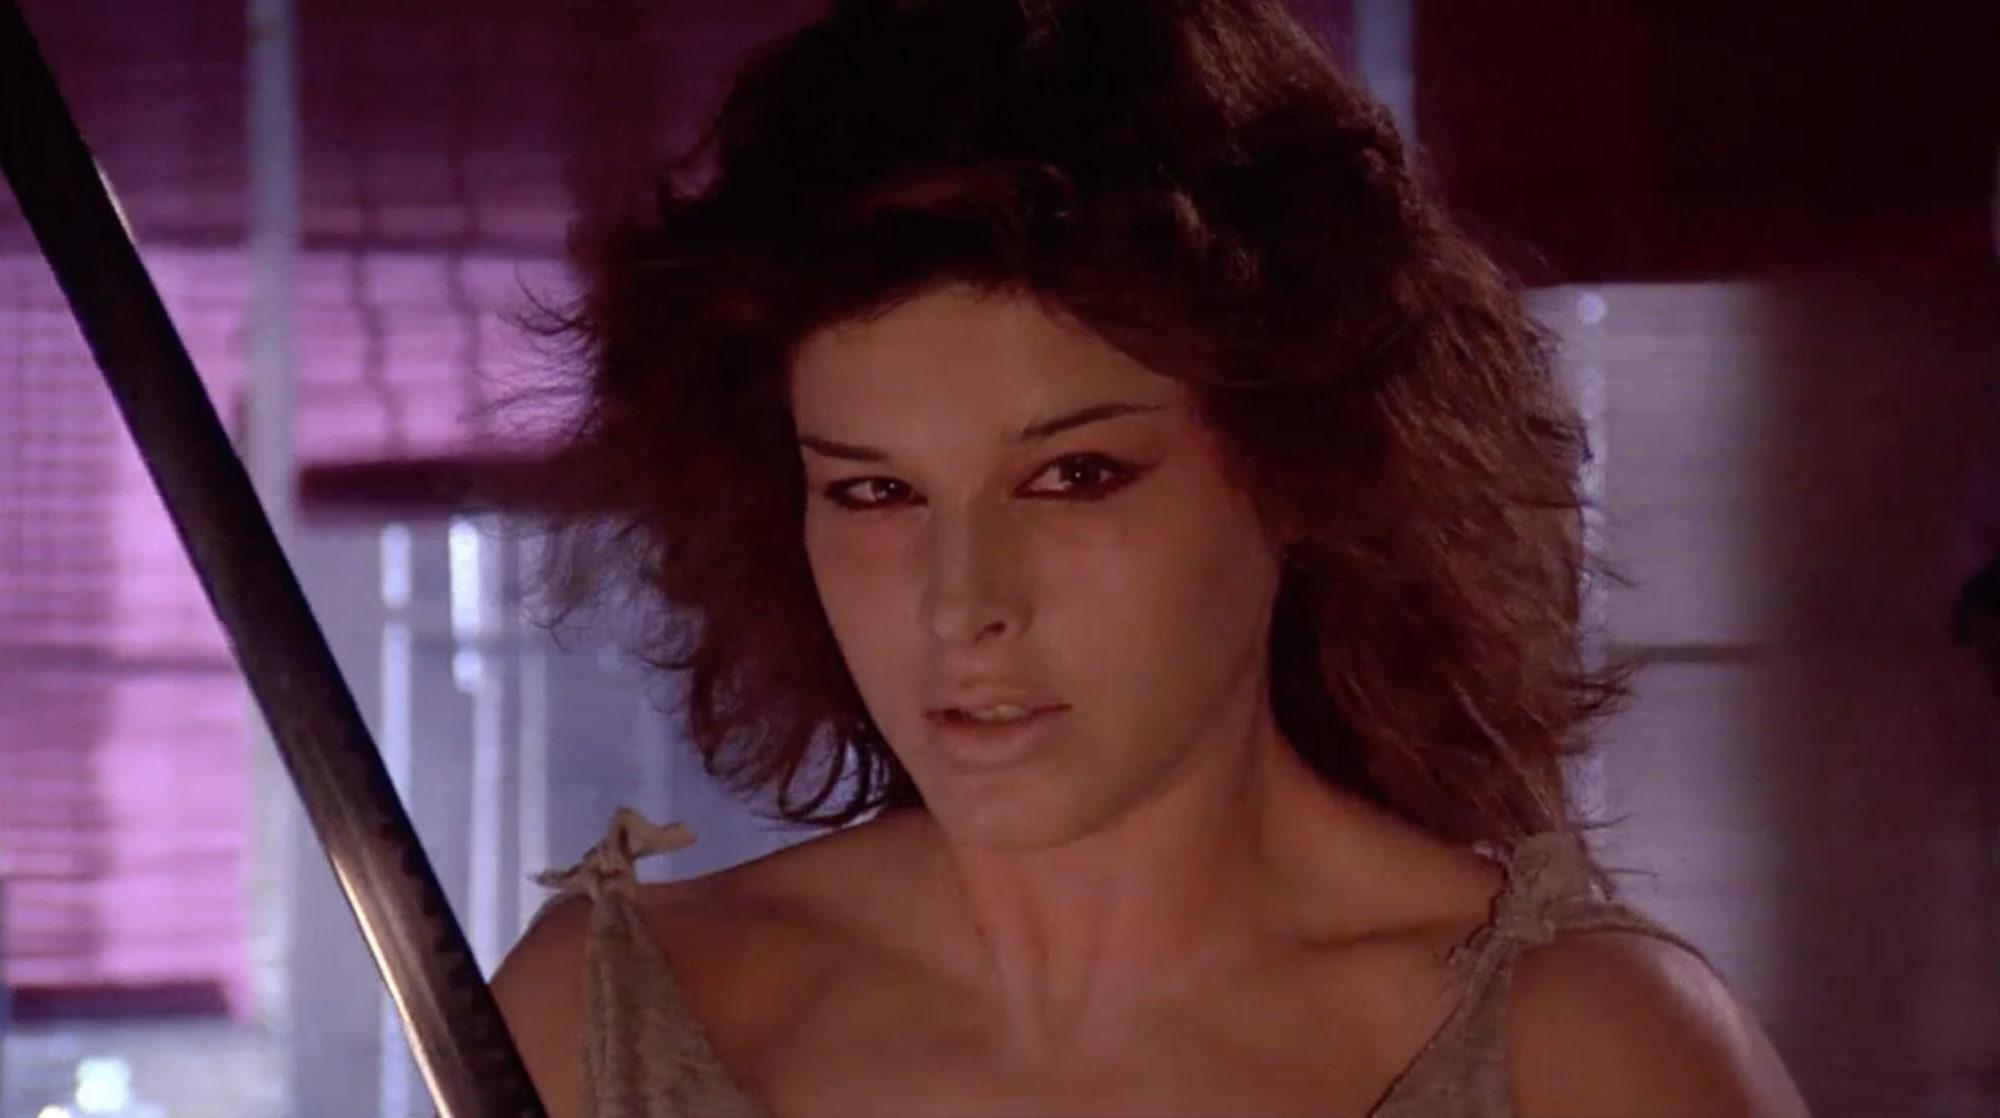 Lucinda Dickey in Ninja III: The Domination